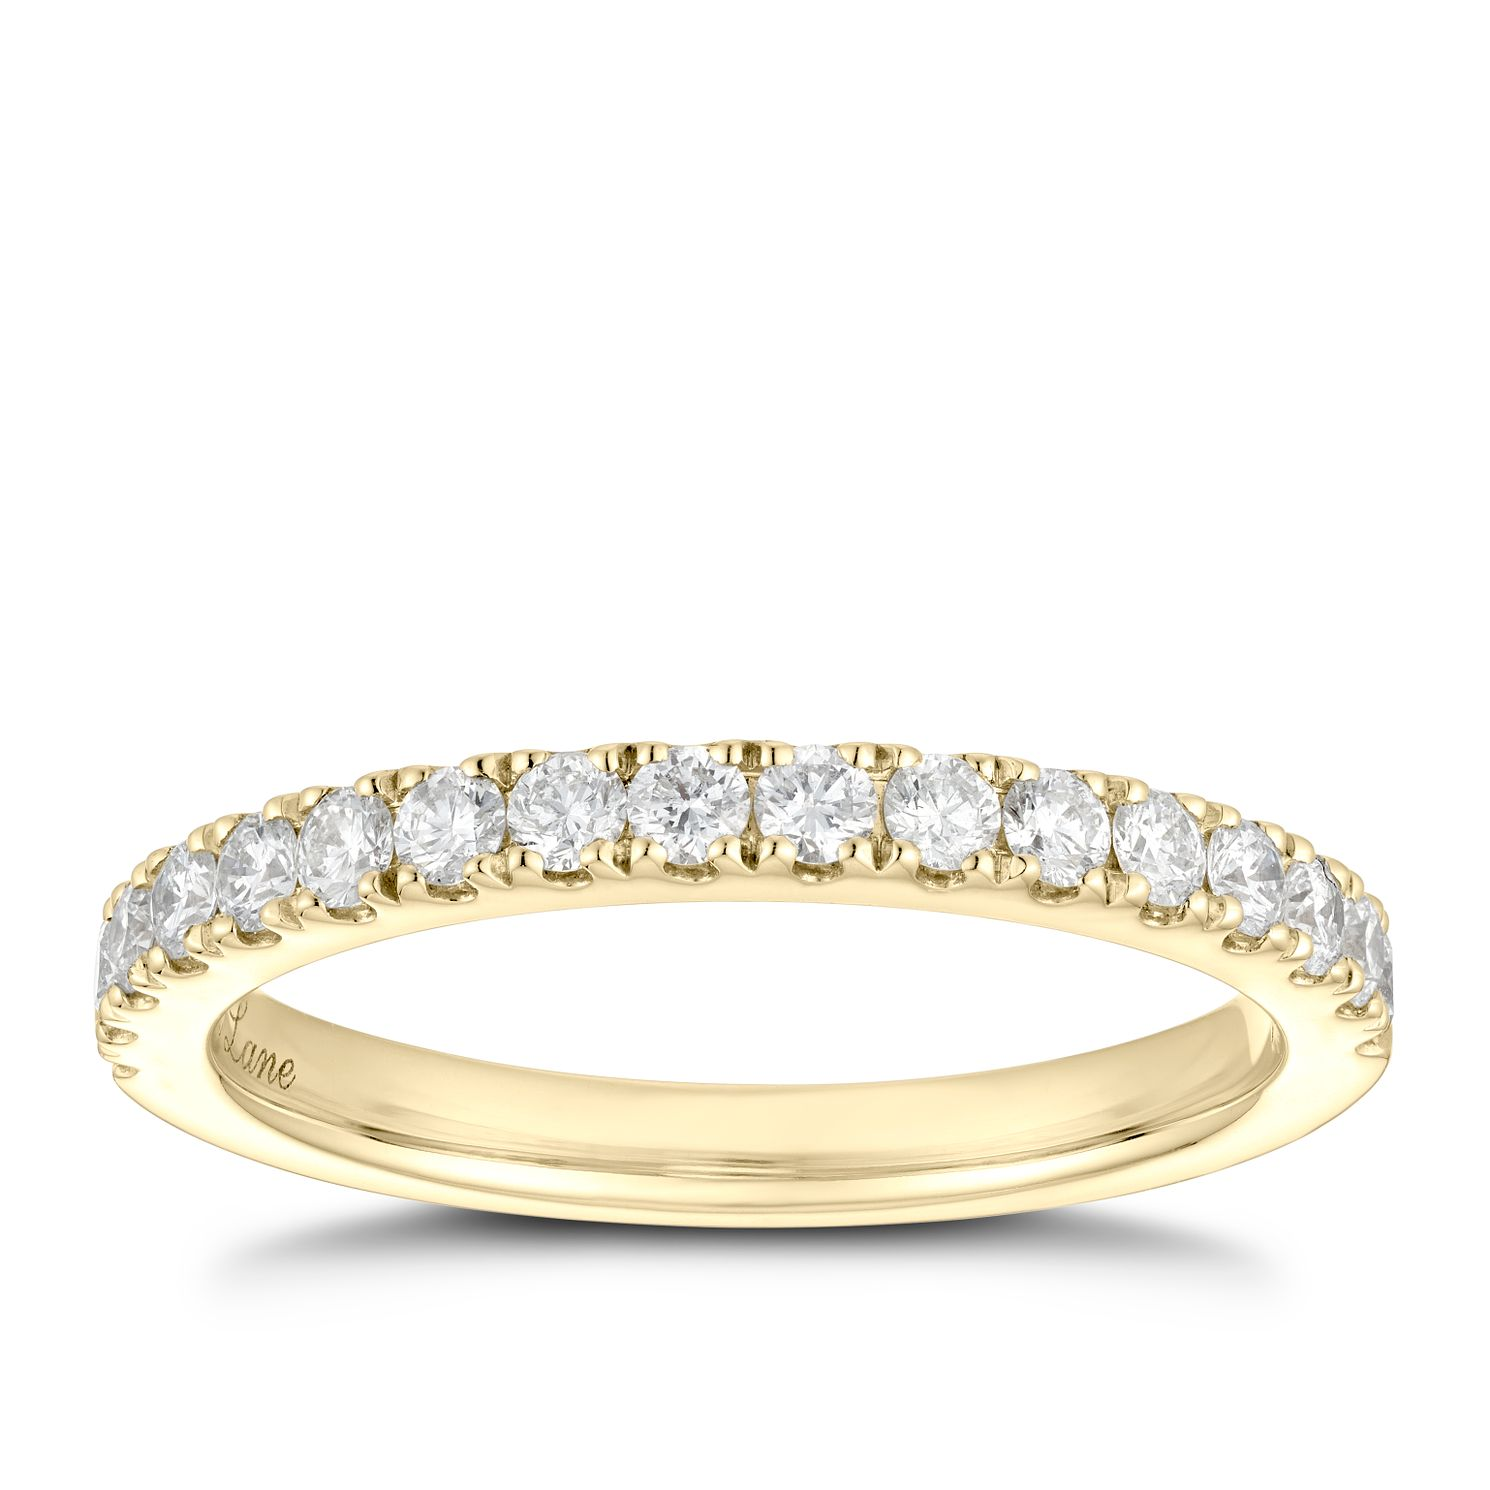 Neil Lane 14ct Yellow Gold 0.42ct Diamond Wedding Ring - Product number 5023629